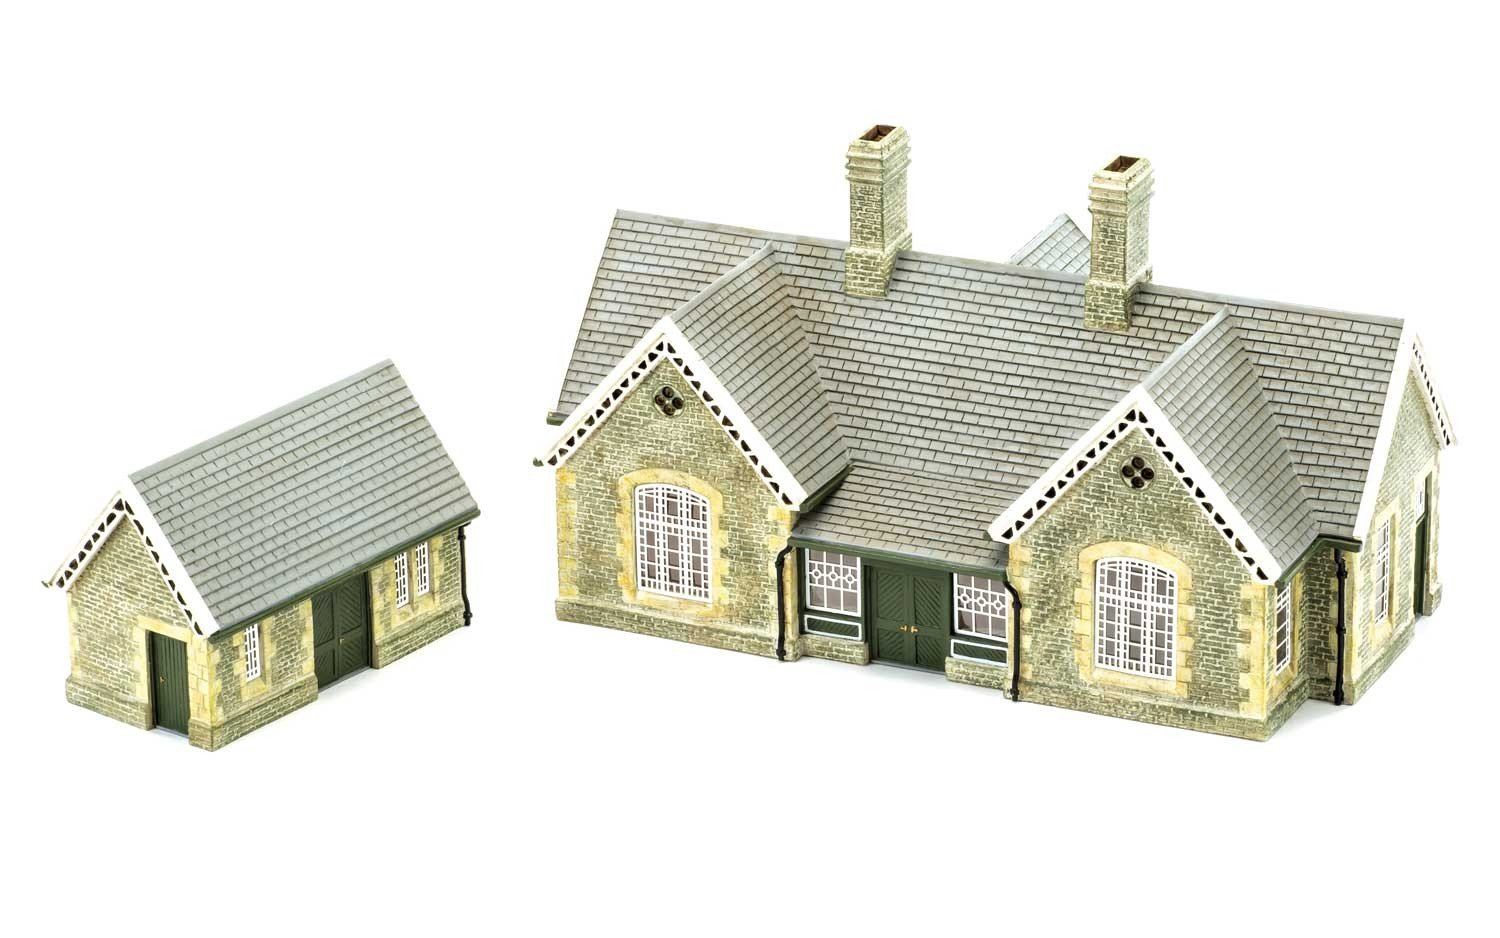 Hornby r9836 Granit Station Building Building Building Craft 01f3f1